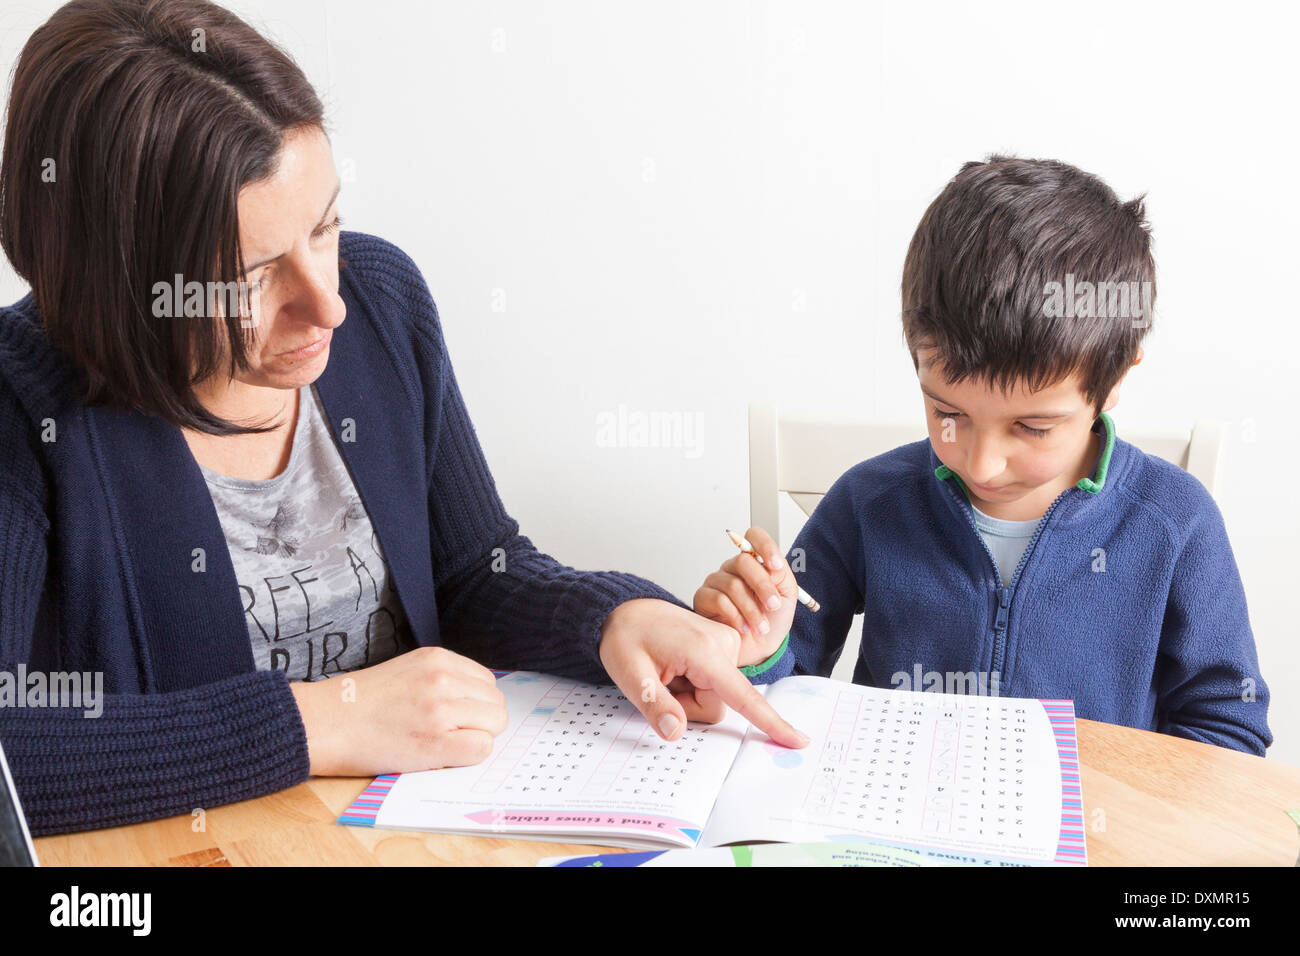 Parent tutoring young boy at home - Stock Image